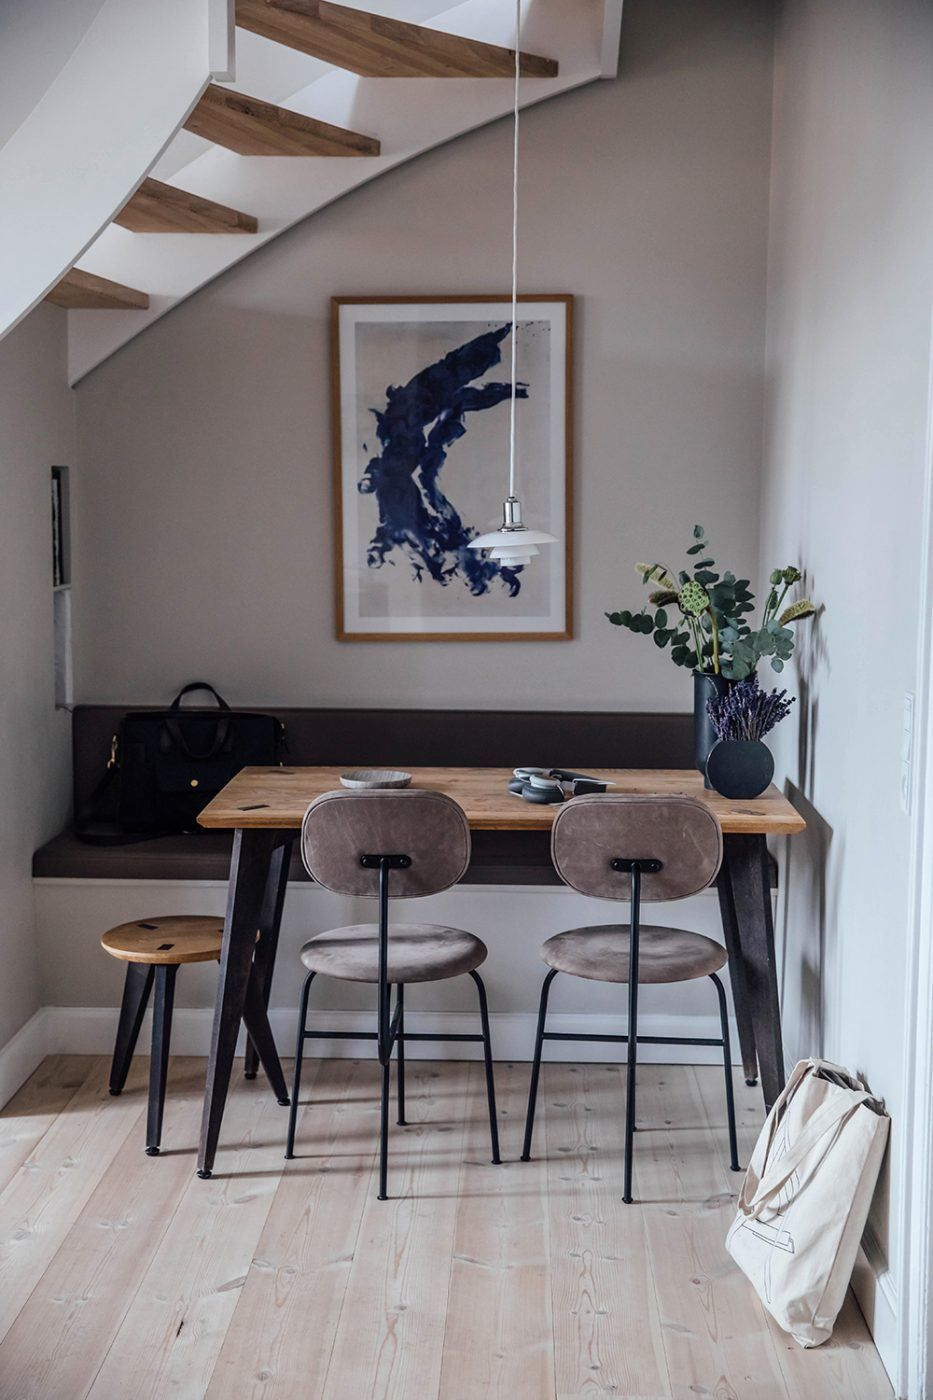 Best 15 Narrow Dining Tables For Small Spaces Gallery Ideas 400 x 300